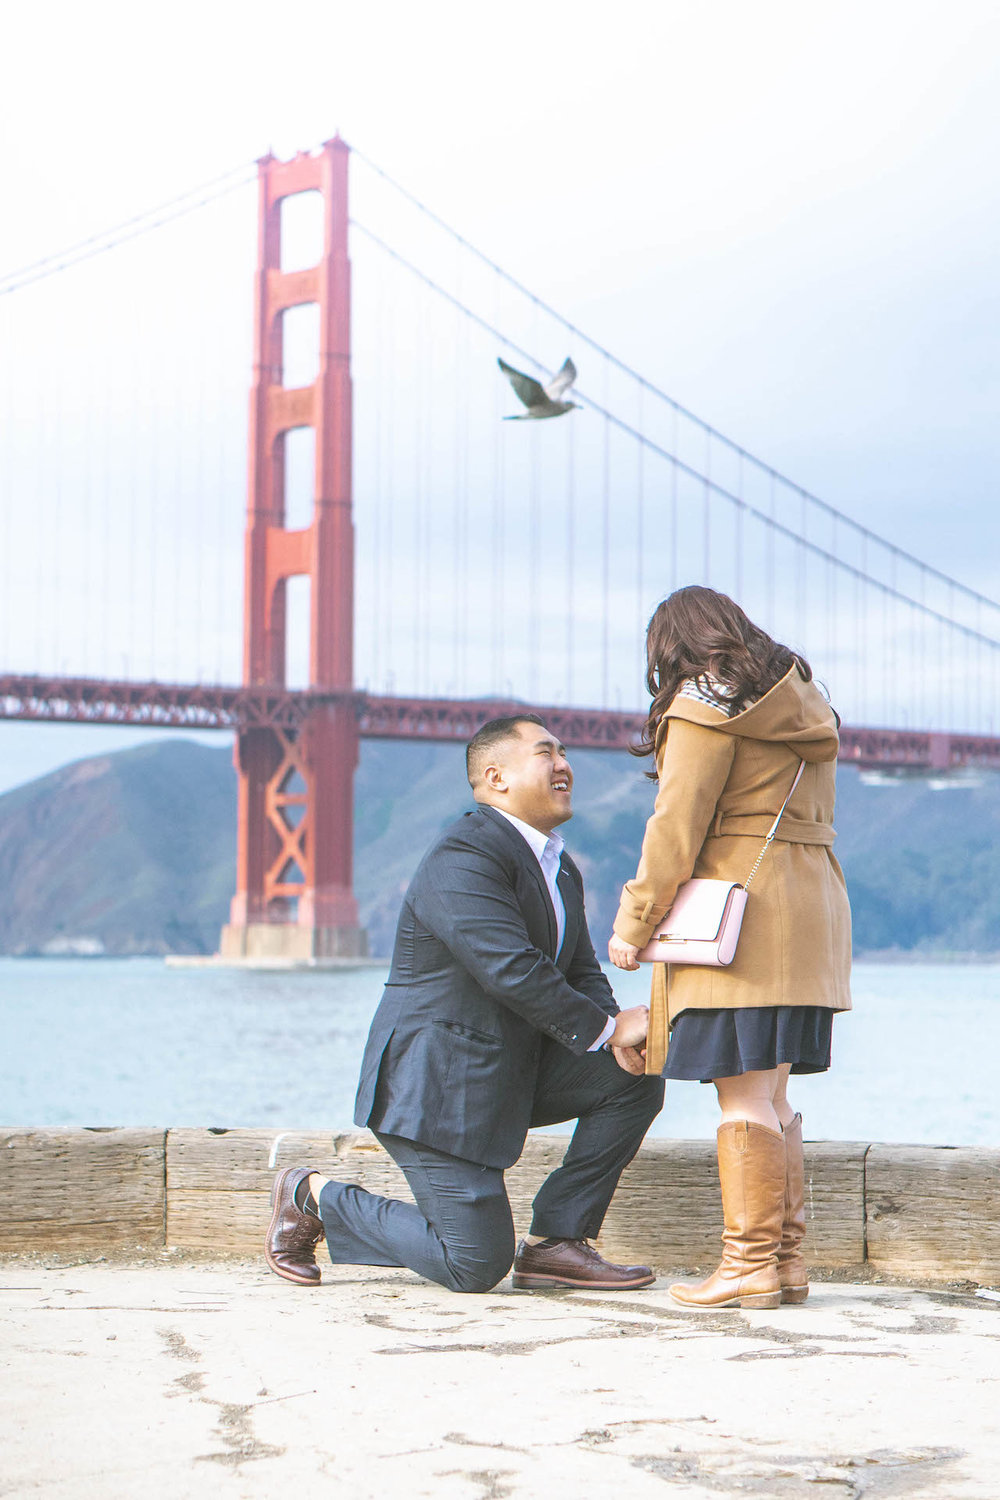 jonathan x katelin 2018 engagement photoshoot san francisco chrissy field